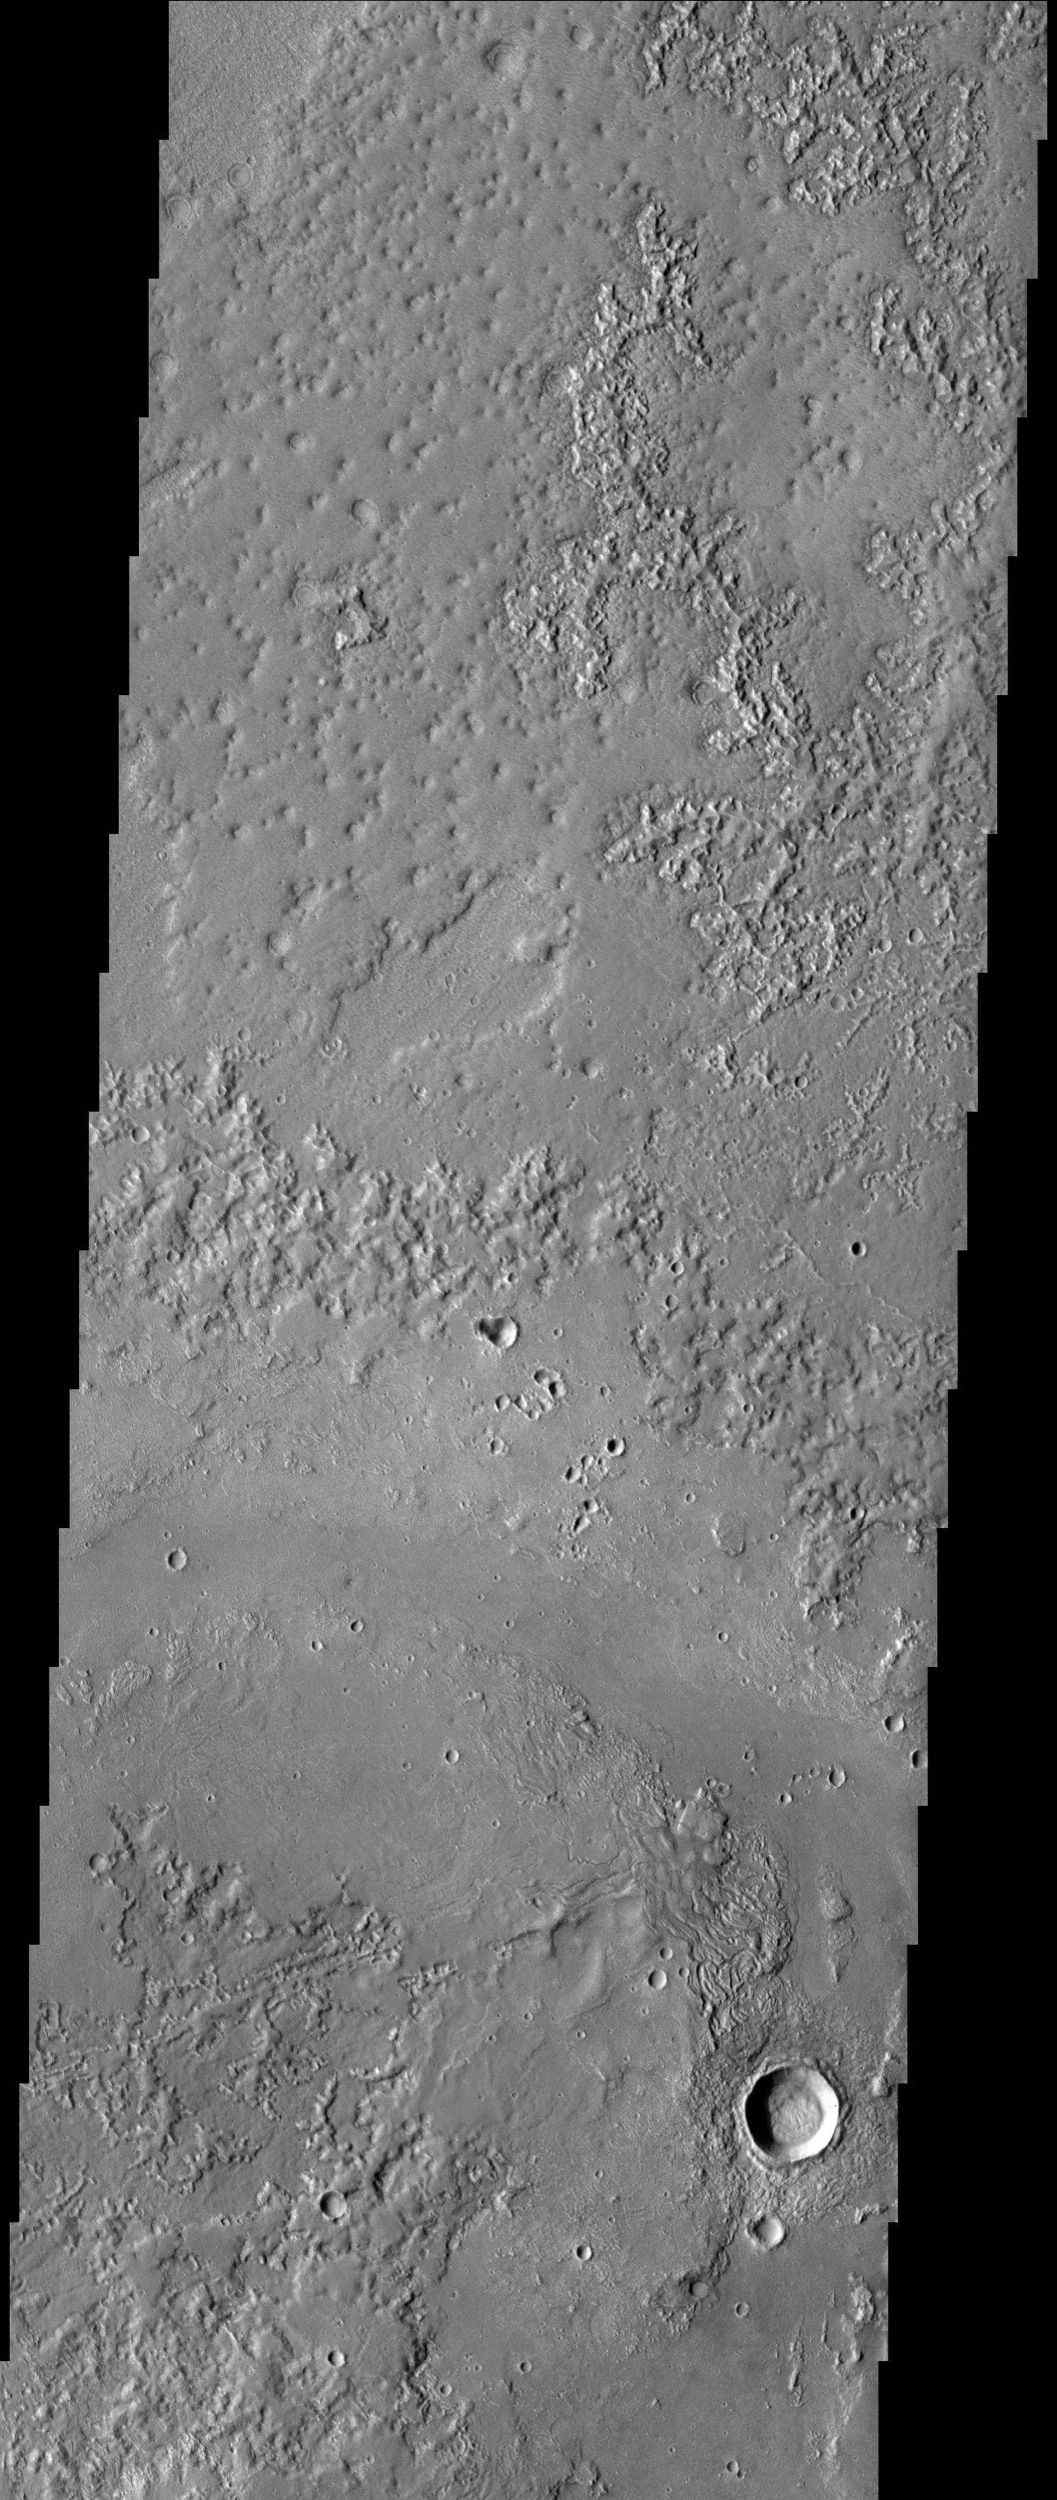 This image from NASA's Mars Odyssey spacecraft shows Granicus Vallis, which is located northwest of the Elysium volcanic complex and may owe its origin to the interaction of volcanic heating and subsurface ground ice.